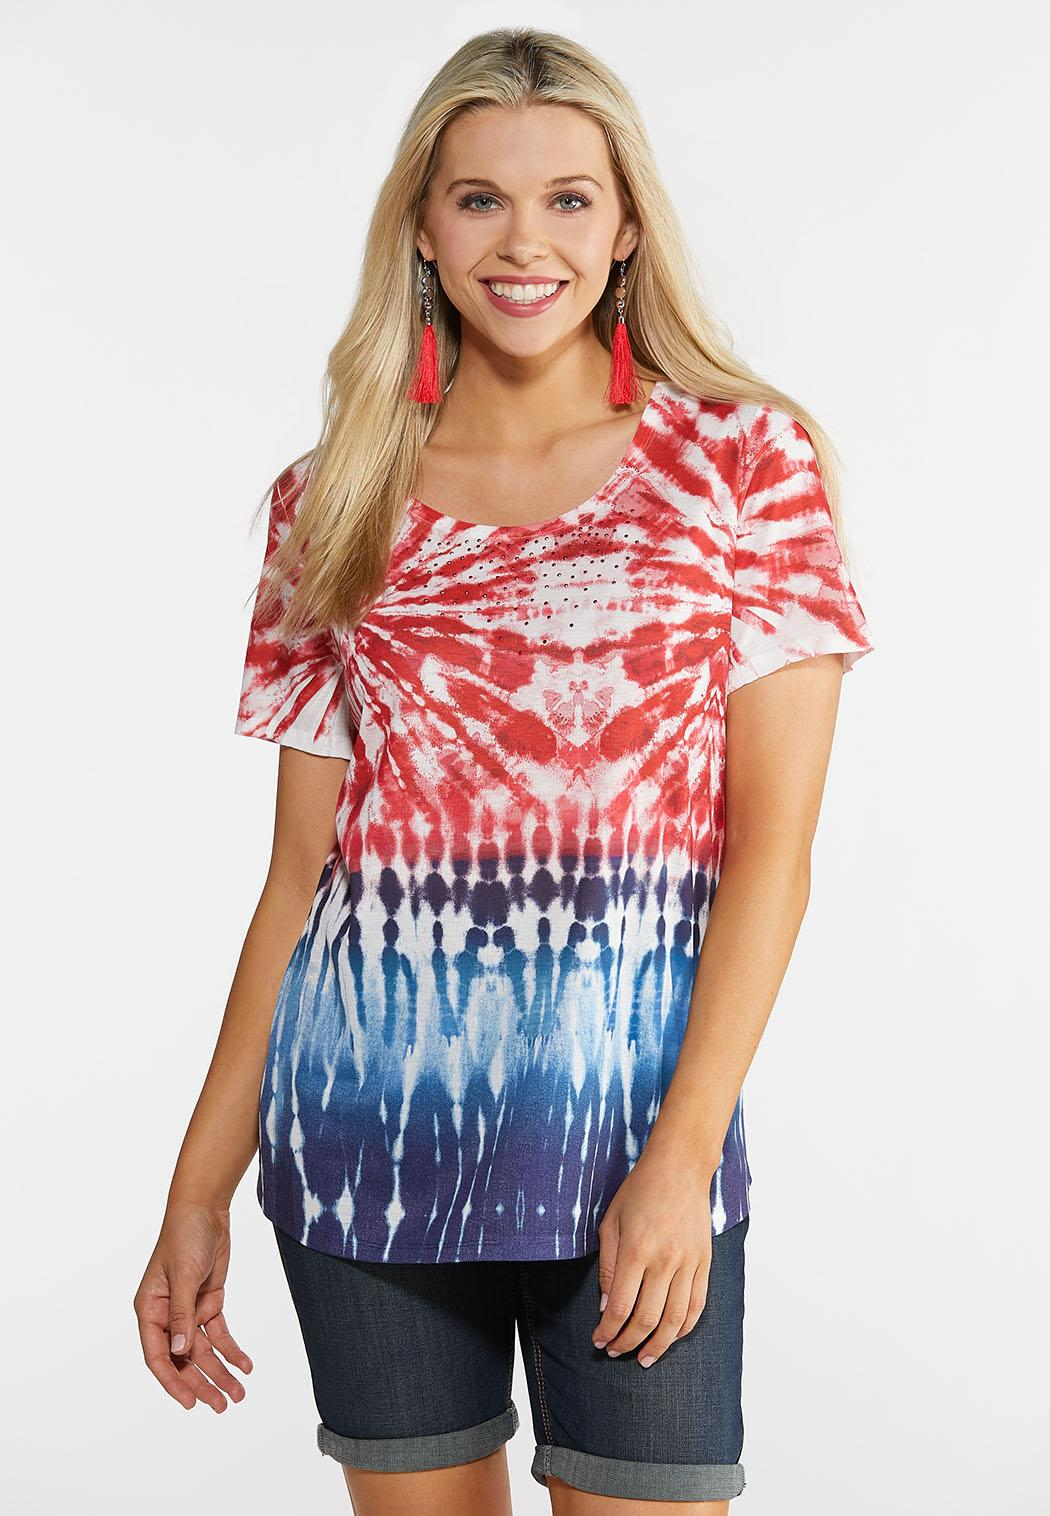 30a217cb47f Plus Size Embellished Tie Dye Tee Tops Cato Fashions